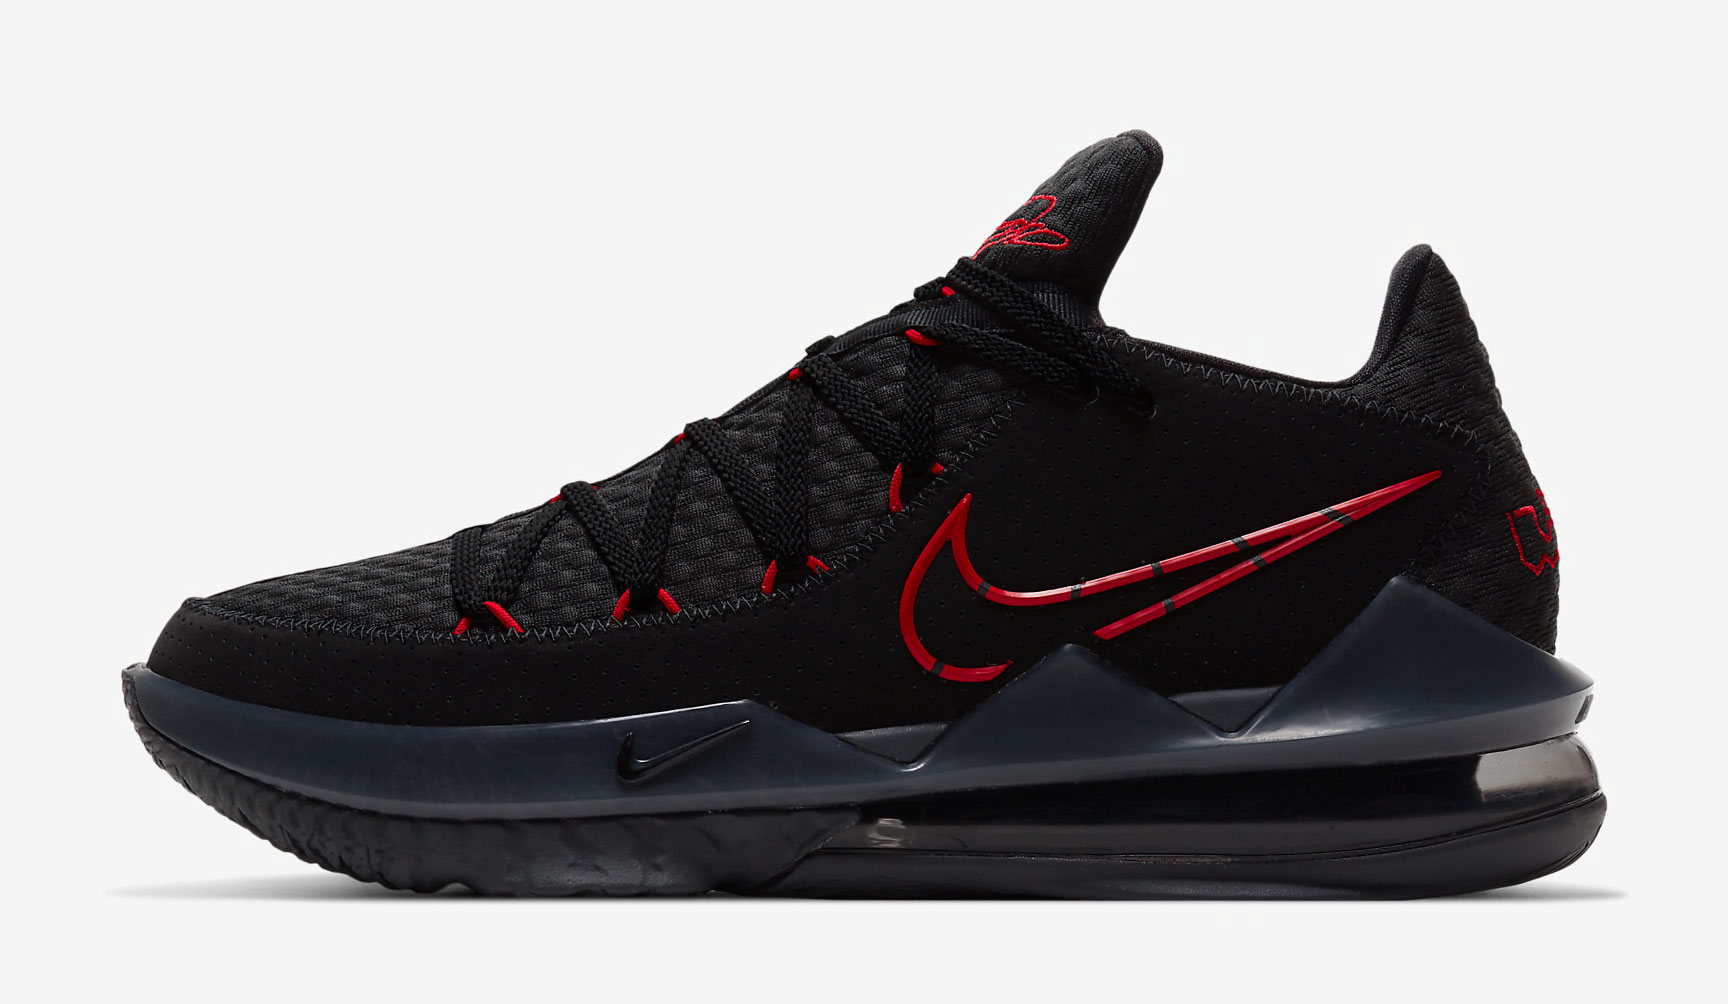 nike-lebron-17-low-bred-release-date-price-2